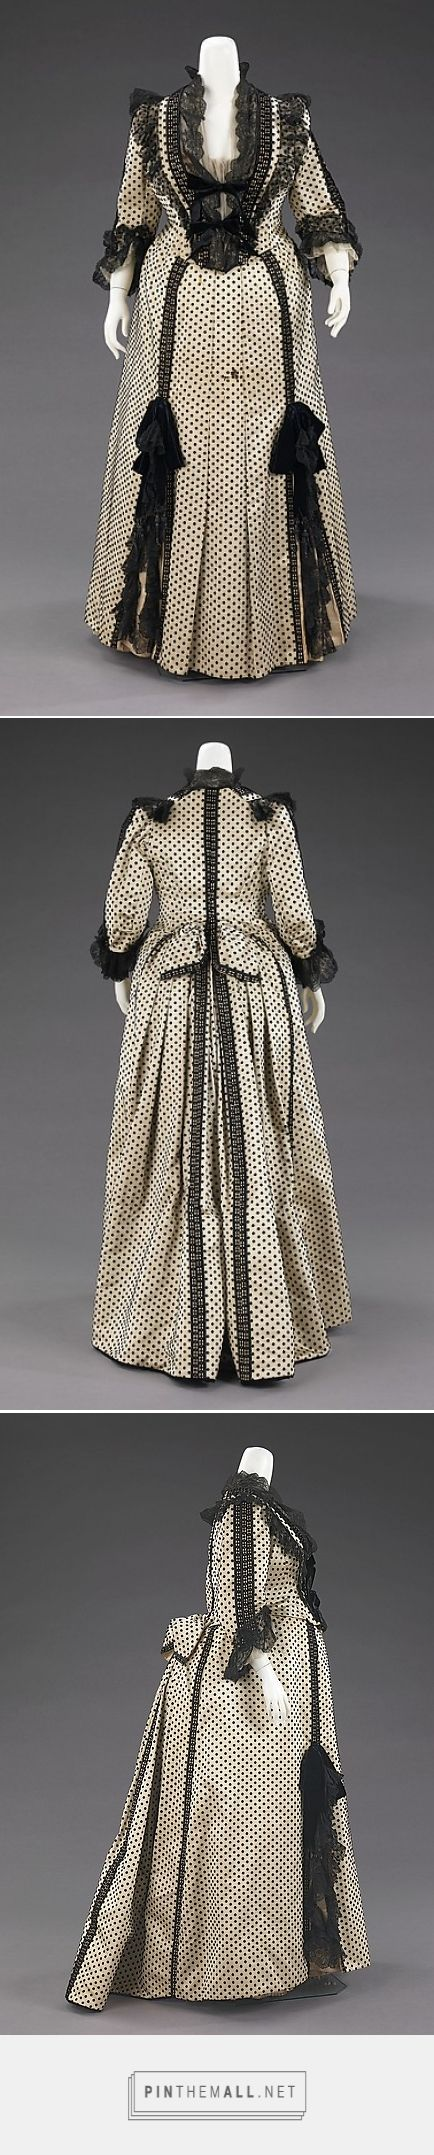 Dinner dress by House of Worth 1880-90 French | The Metropolitan Museum of Art